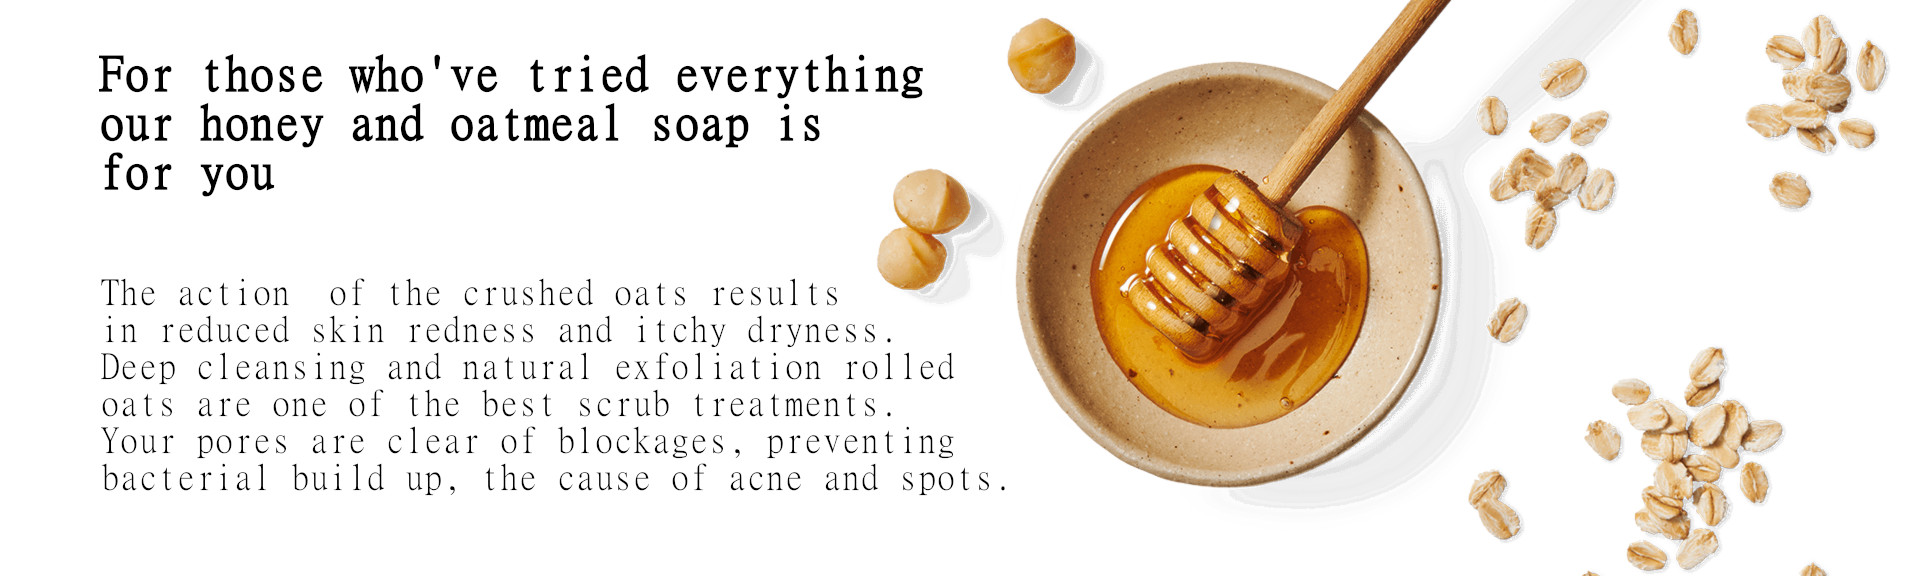 Organic honey oatmeal soap 120g £4.99 reduced redness and skin irritation, fewer pimples and breakouts from spots, oats exfoliate skin for clear pores oily skin is cleansed, acne and eczema soap from Scotland Highland Scottish luxury soaps